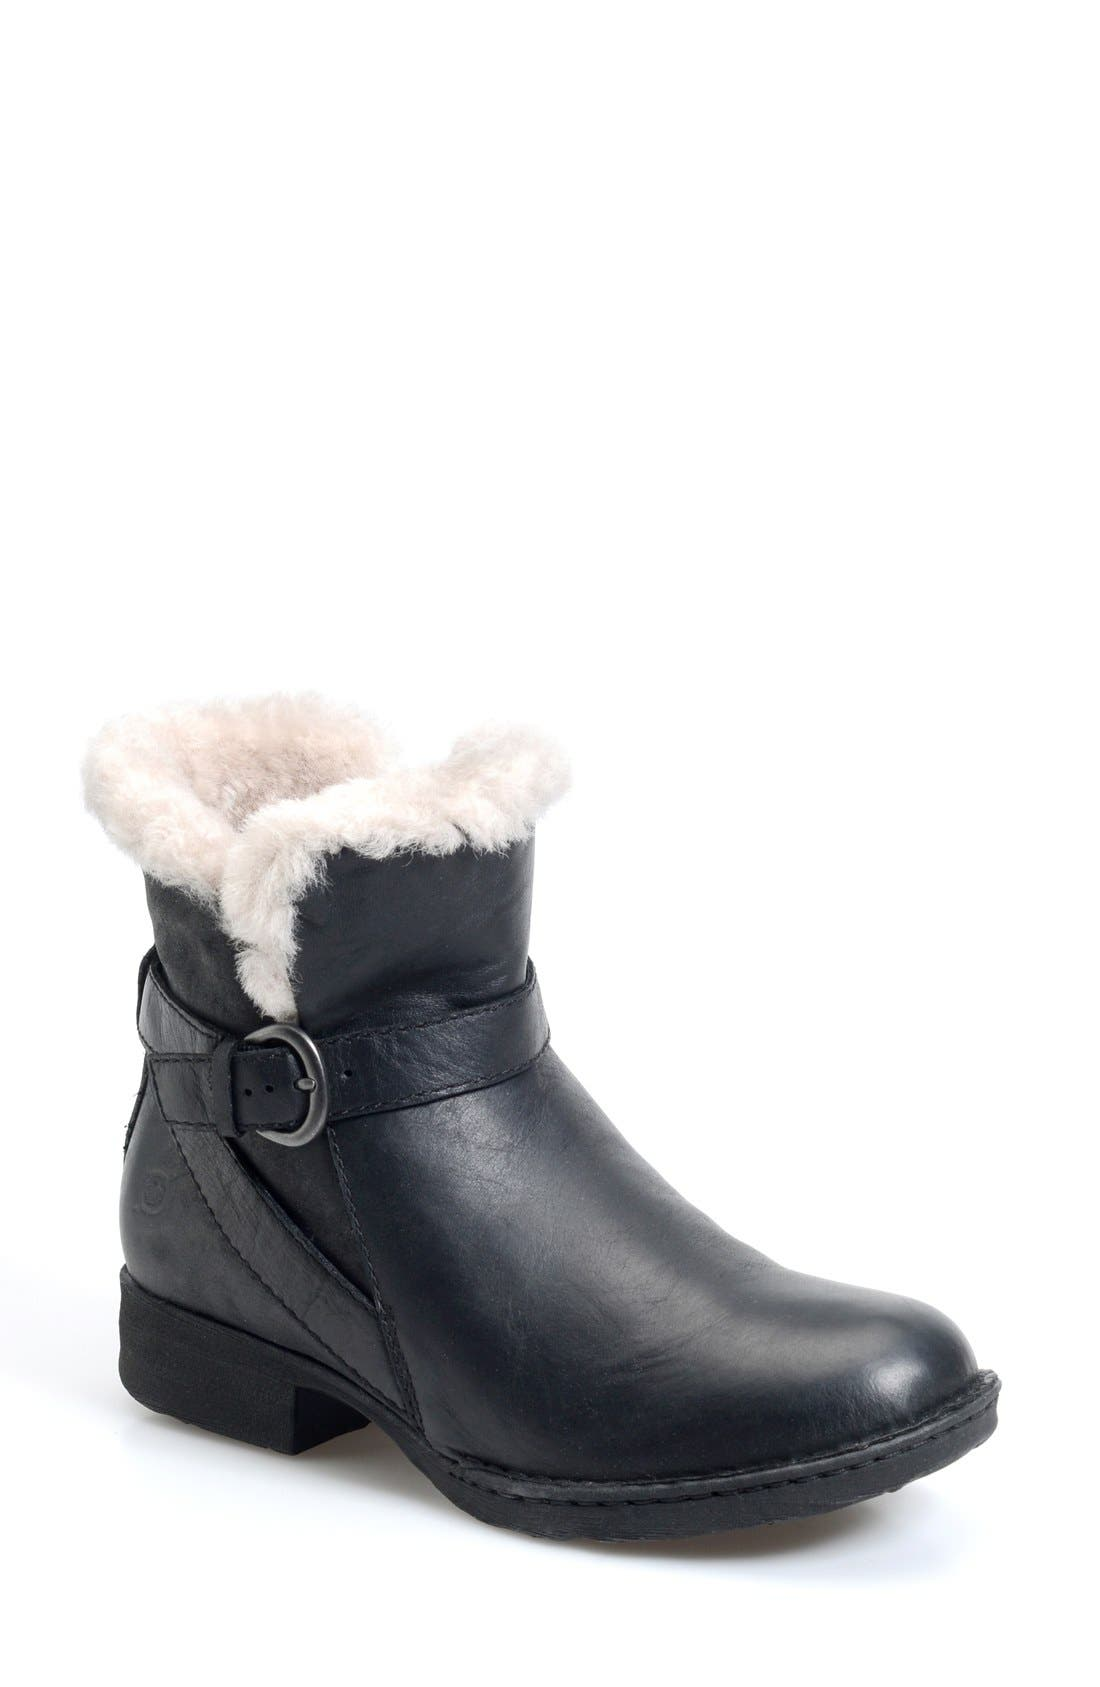 Børn 'Kaia' Round Toe Shearling Ankle Boot